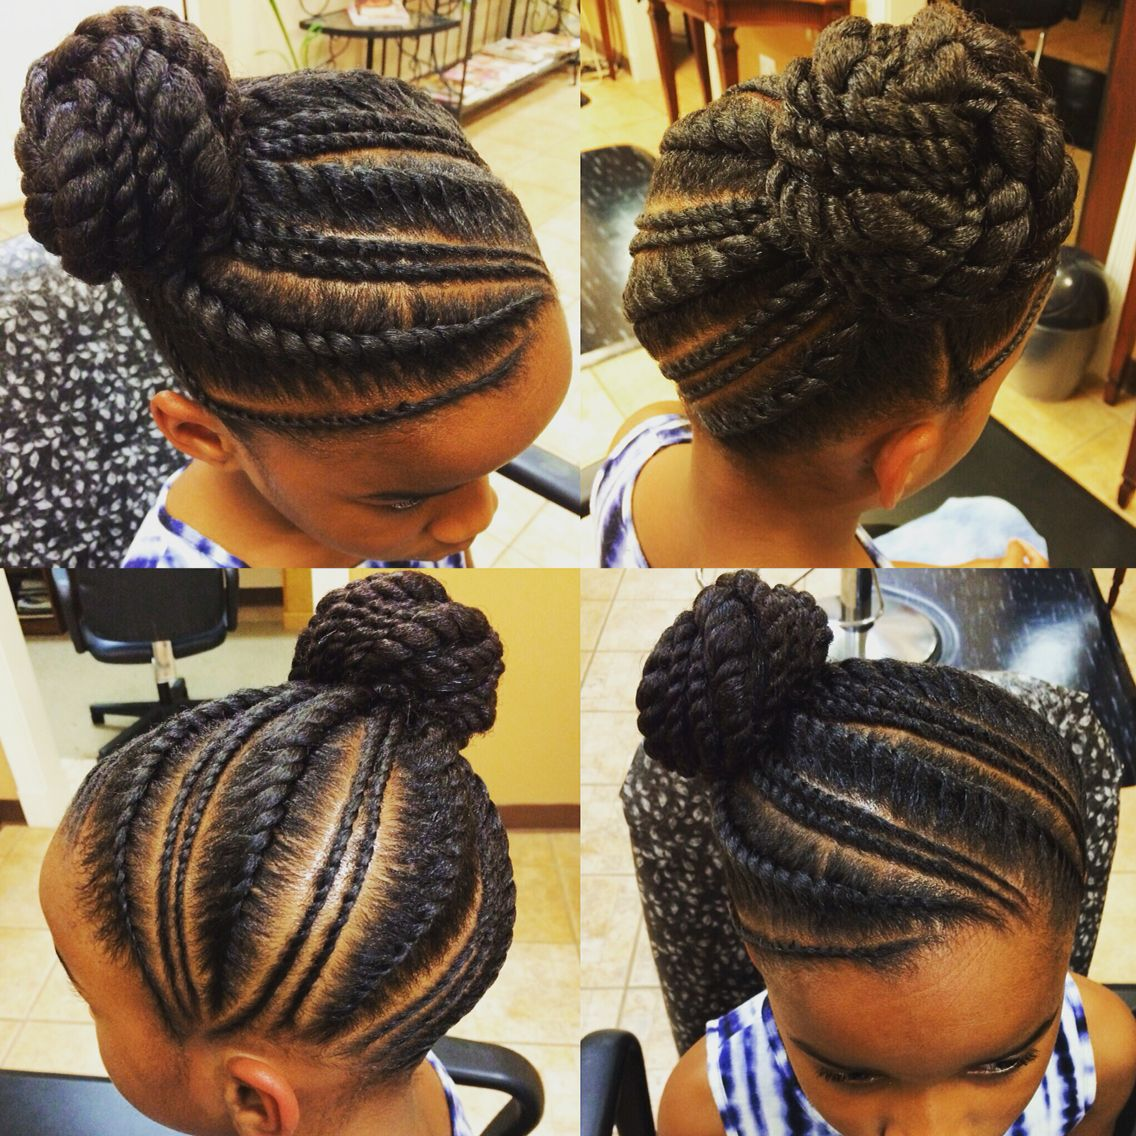 These 3 Cute Flat Twist Hairstyles Take Winning Prize For